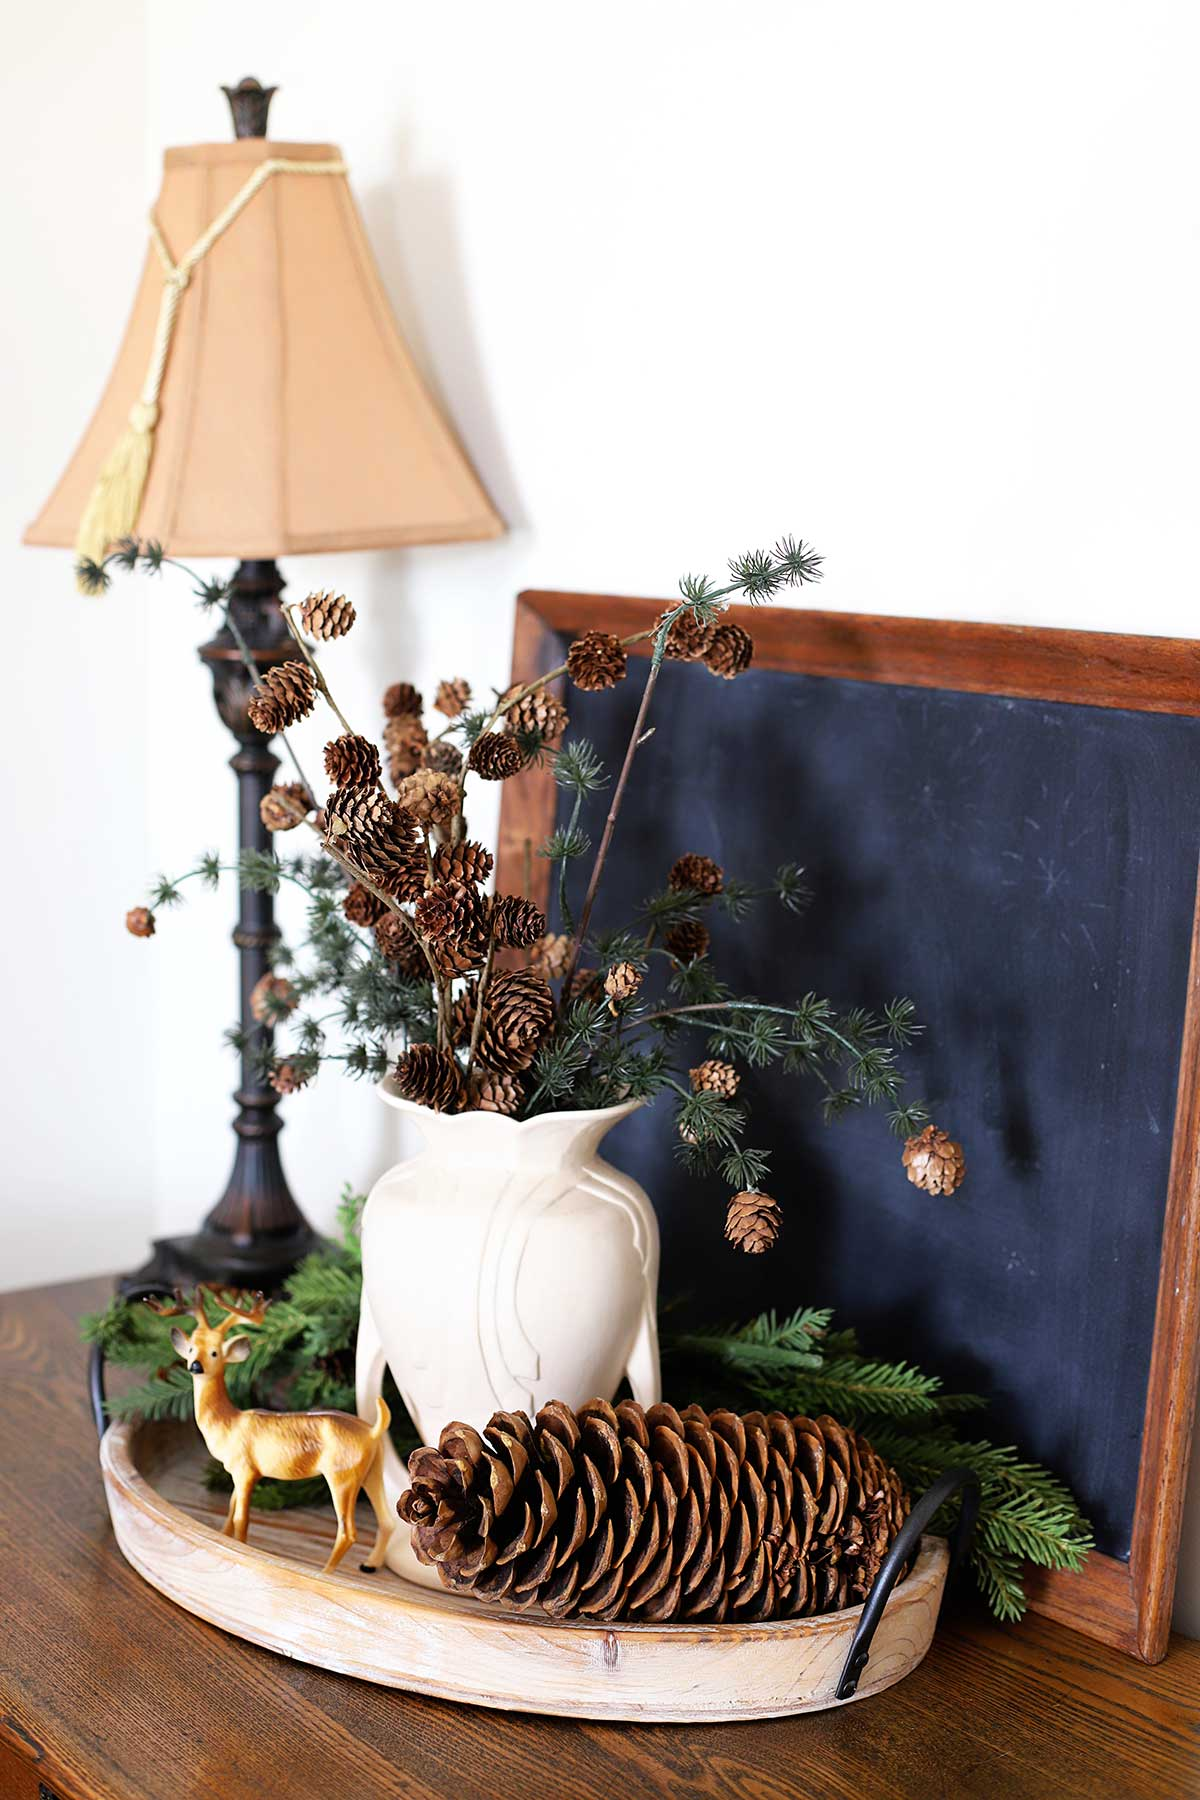 How to use pinecones in winter decor